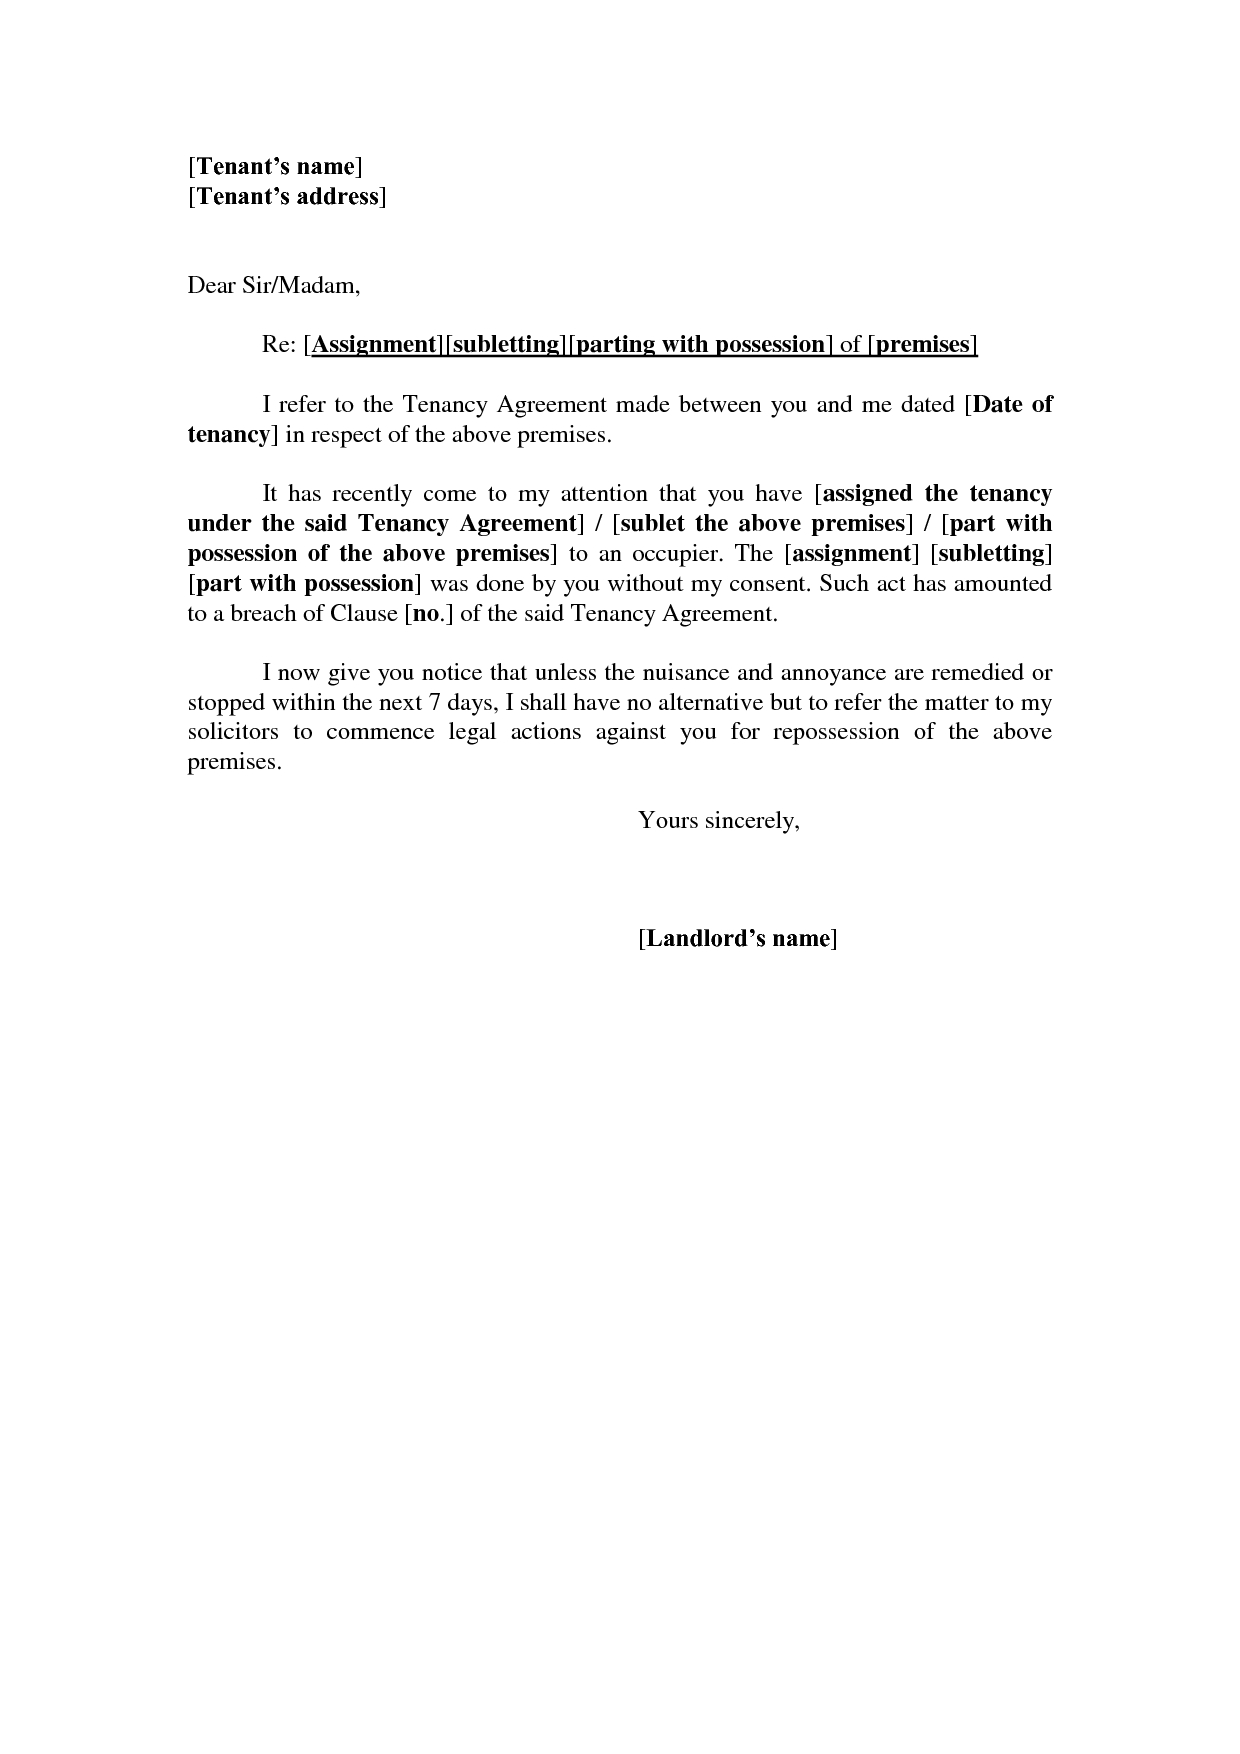 Landlord Reference Letter Template - Postpic 2013 04 Tenant Reference